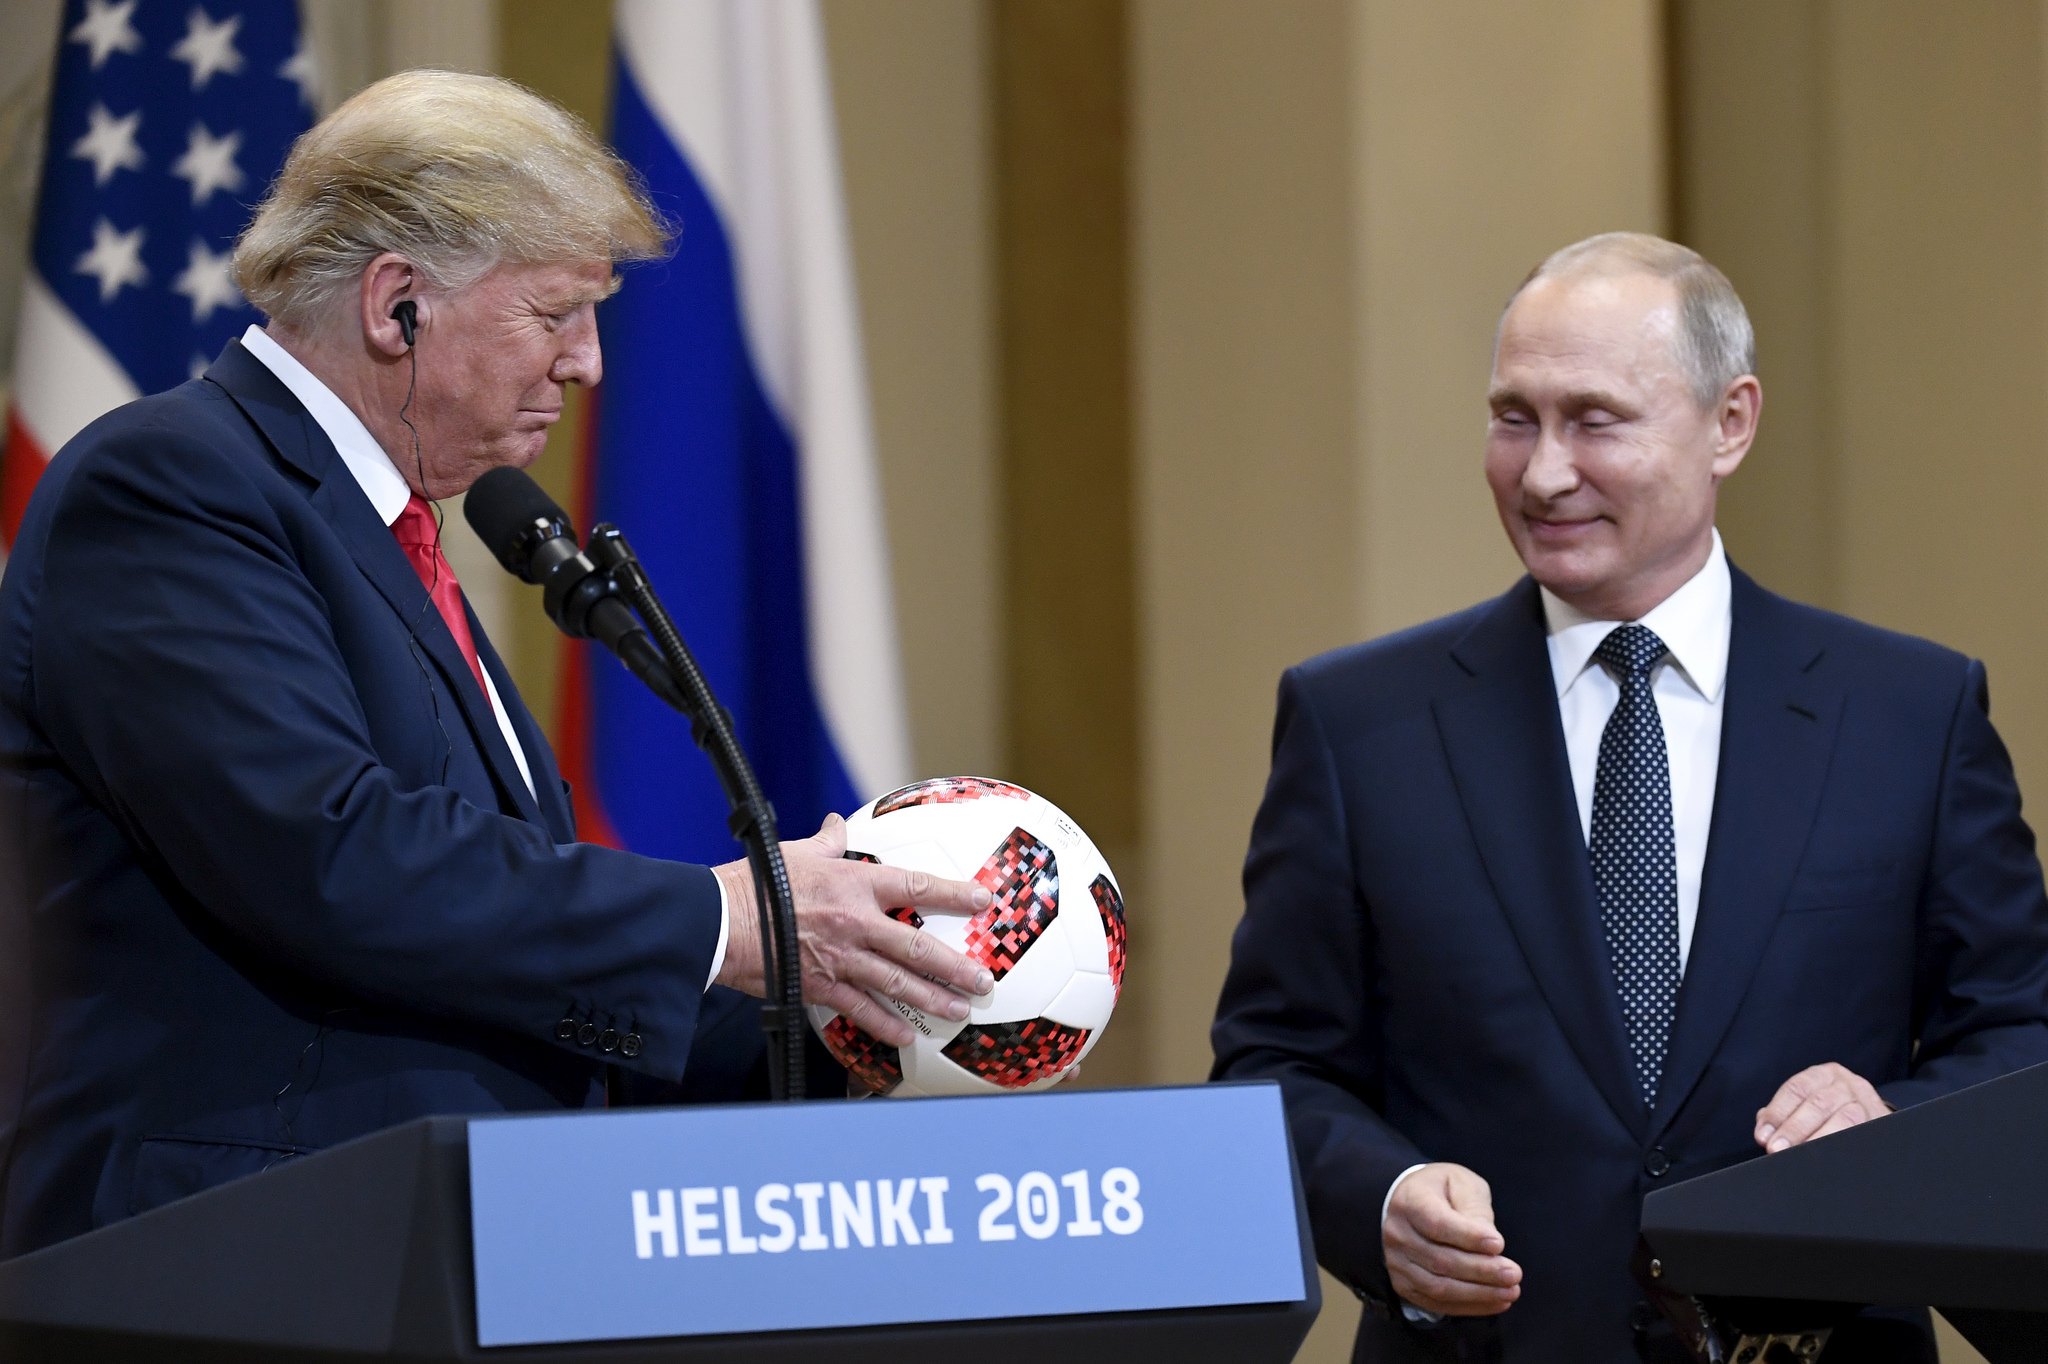 President Trump and Putin Discuss For Two Hours in Helsinki – Restored Their Trust